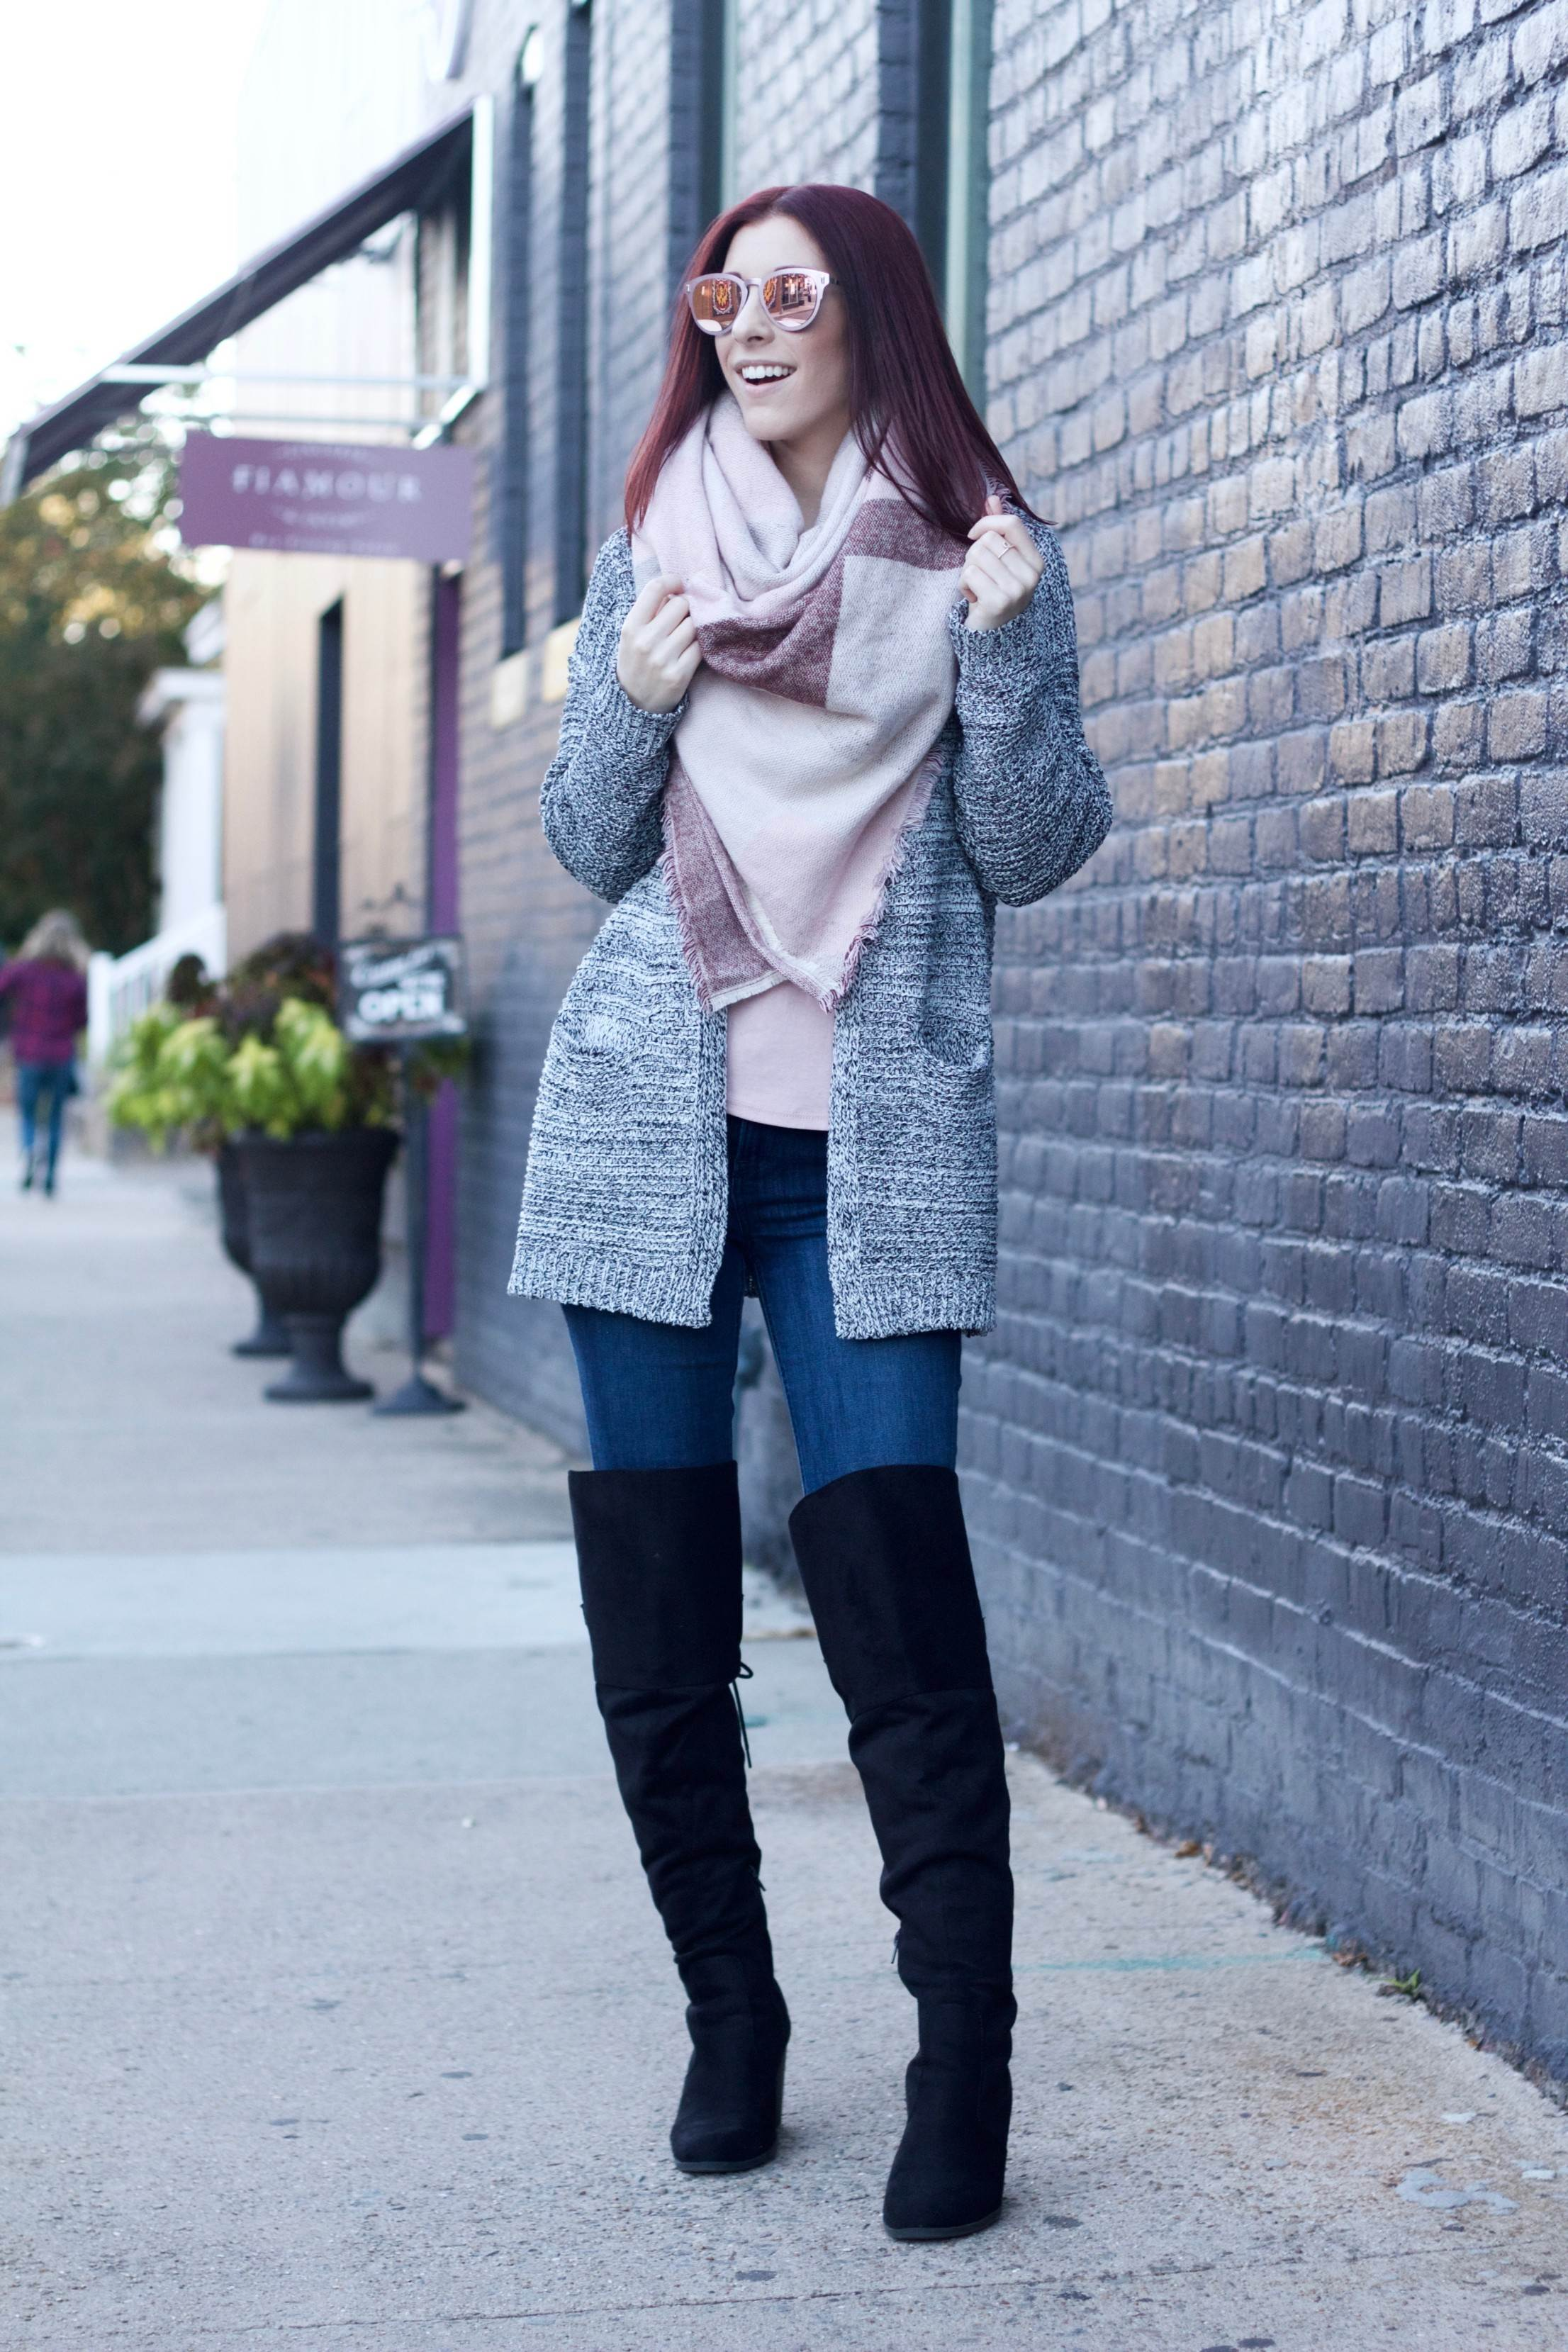 An Evening Chill: Casual Date Night // She Saw Style